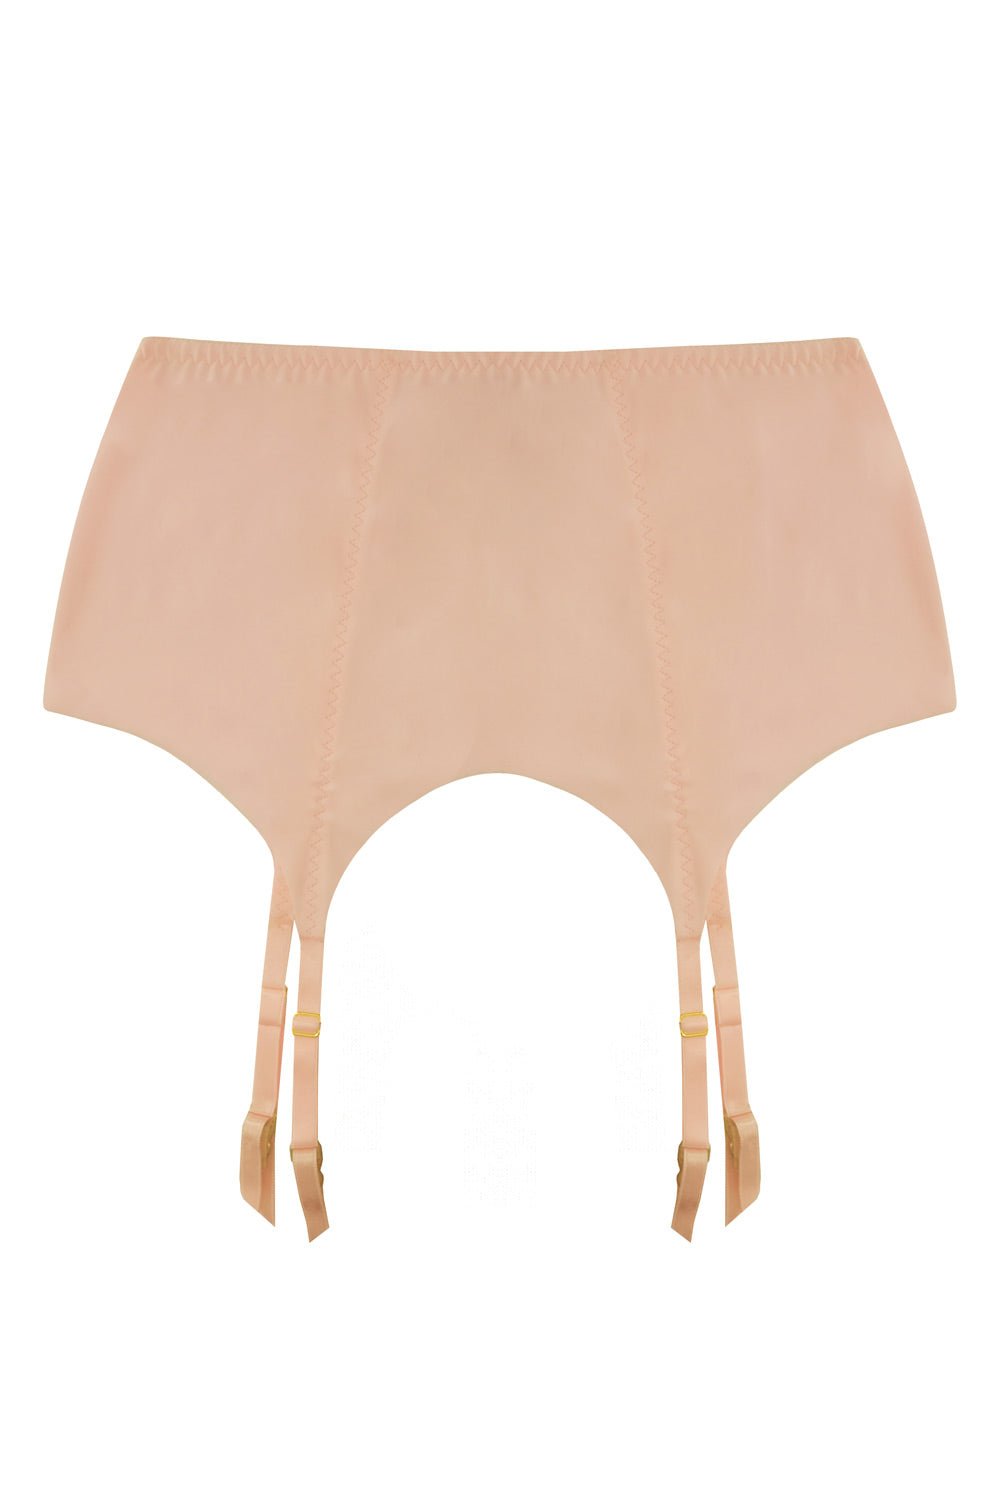 Seamless nude garter belt - Garter belt by WOW! Panties. Shop on yesUndress